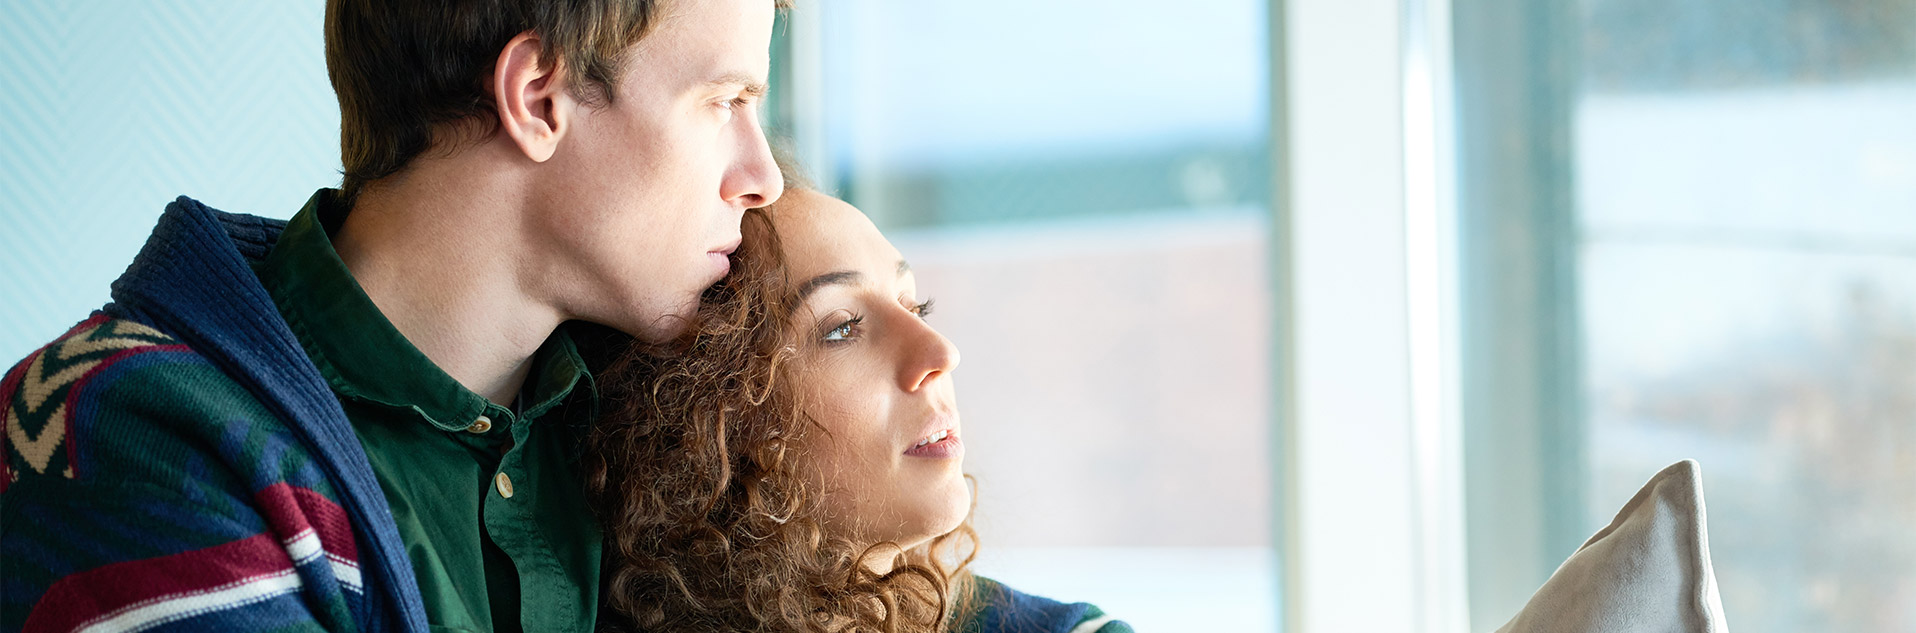 couple in serious thought looking out a window